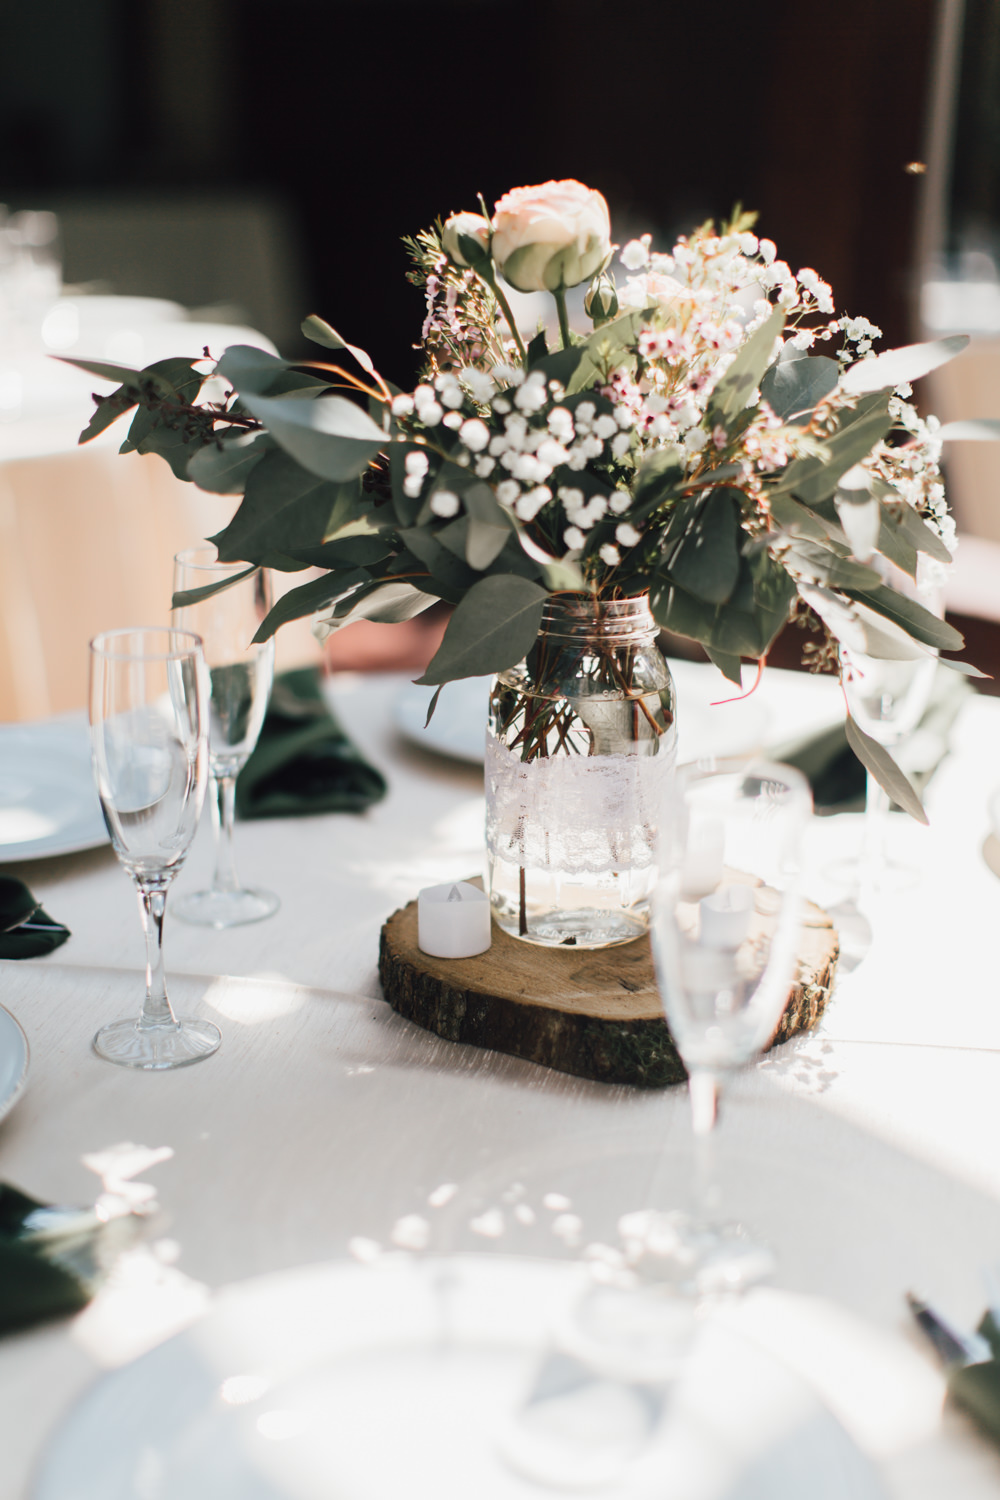 Table Centrepiece Flowers Jar Log Slice Greenery Foliage Peony Emotional Outdoor Wedding Laura Memory Photography